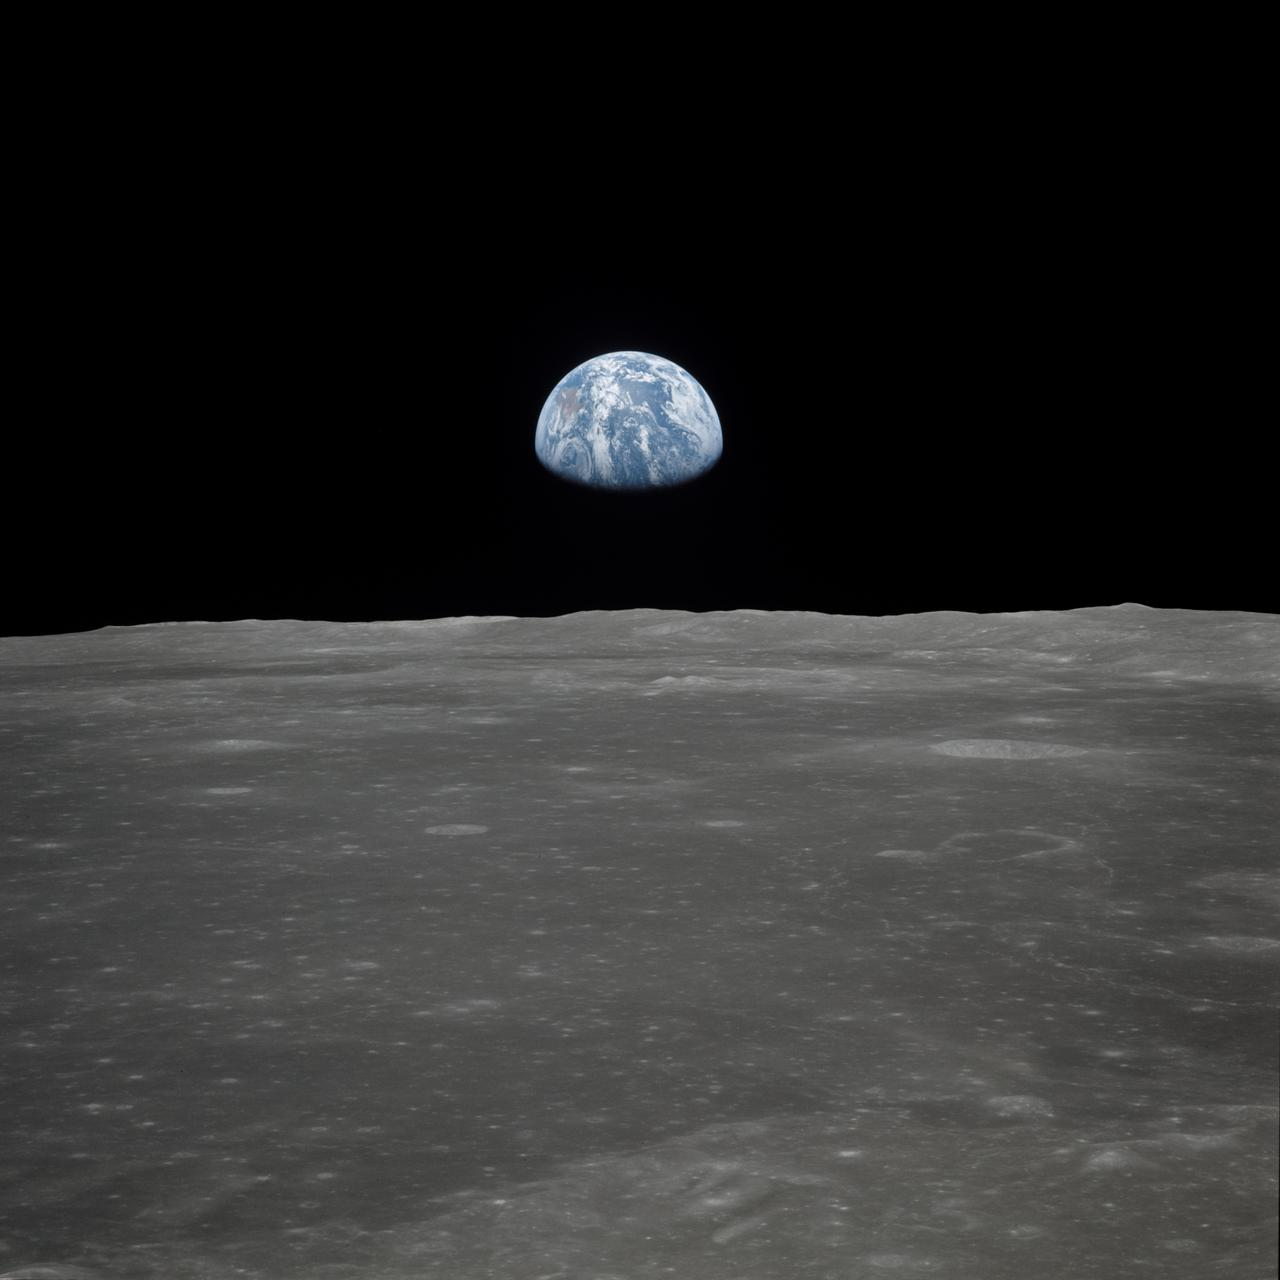 "AS11-44-6552 (16-24 July 1969) --- This view of Earth rising over the moon's horizon was taken from the Apollo spacecraft. The lunar terrain pictured is in the area of Smyth's Sea on the nearside. Coordinates of the center of the terrain are 85 degrees east longitude and 3 degrees north latitude. While astronaut Neil A. Armstrong, commander; and Edwin E. Aldrin Jr., lunar module pilot, descended in the Lunar Module (LM) ""Eagle"" to explore the Sea of Tranquility region of the moon, astronaut Michael Collins remained with the Command and Service Modules (CSM) ""Columbia"" in lunar orbit."